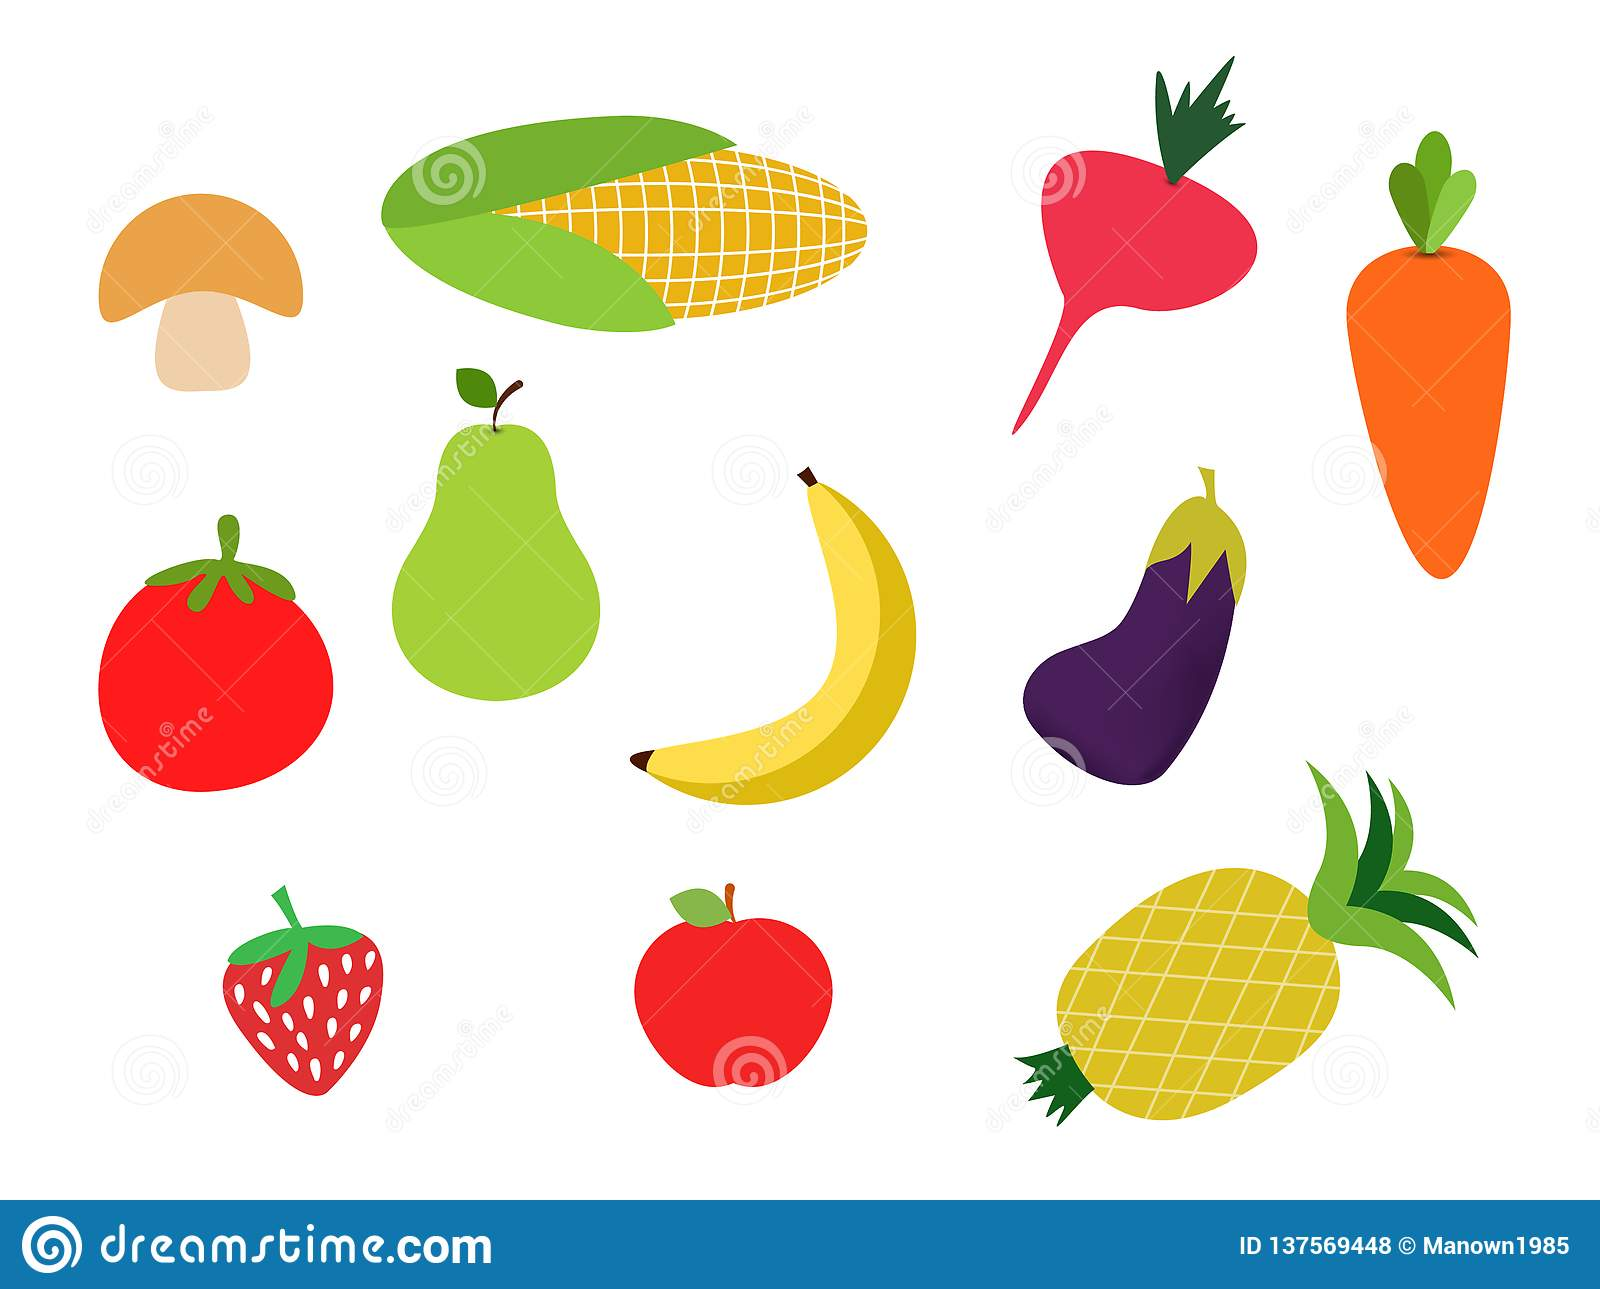 Colorful Fruits And Vegetables Clipart Set,banana,carot Stock Vector.